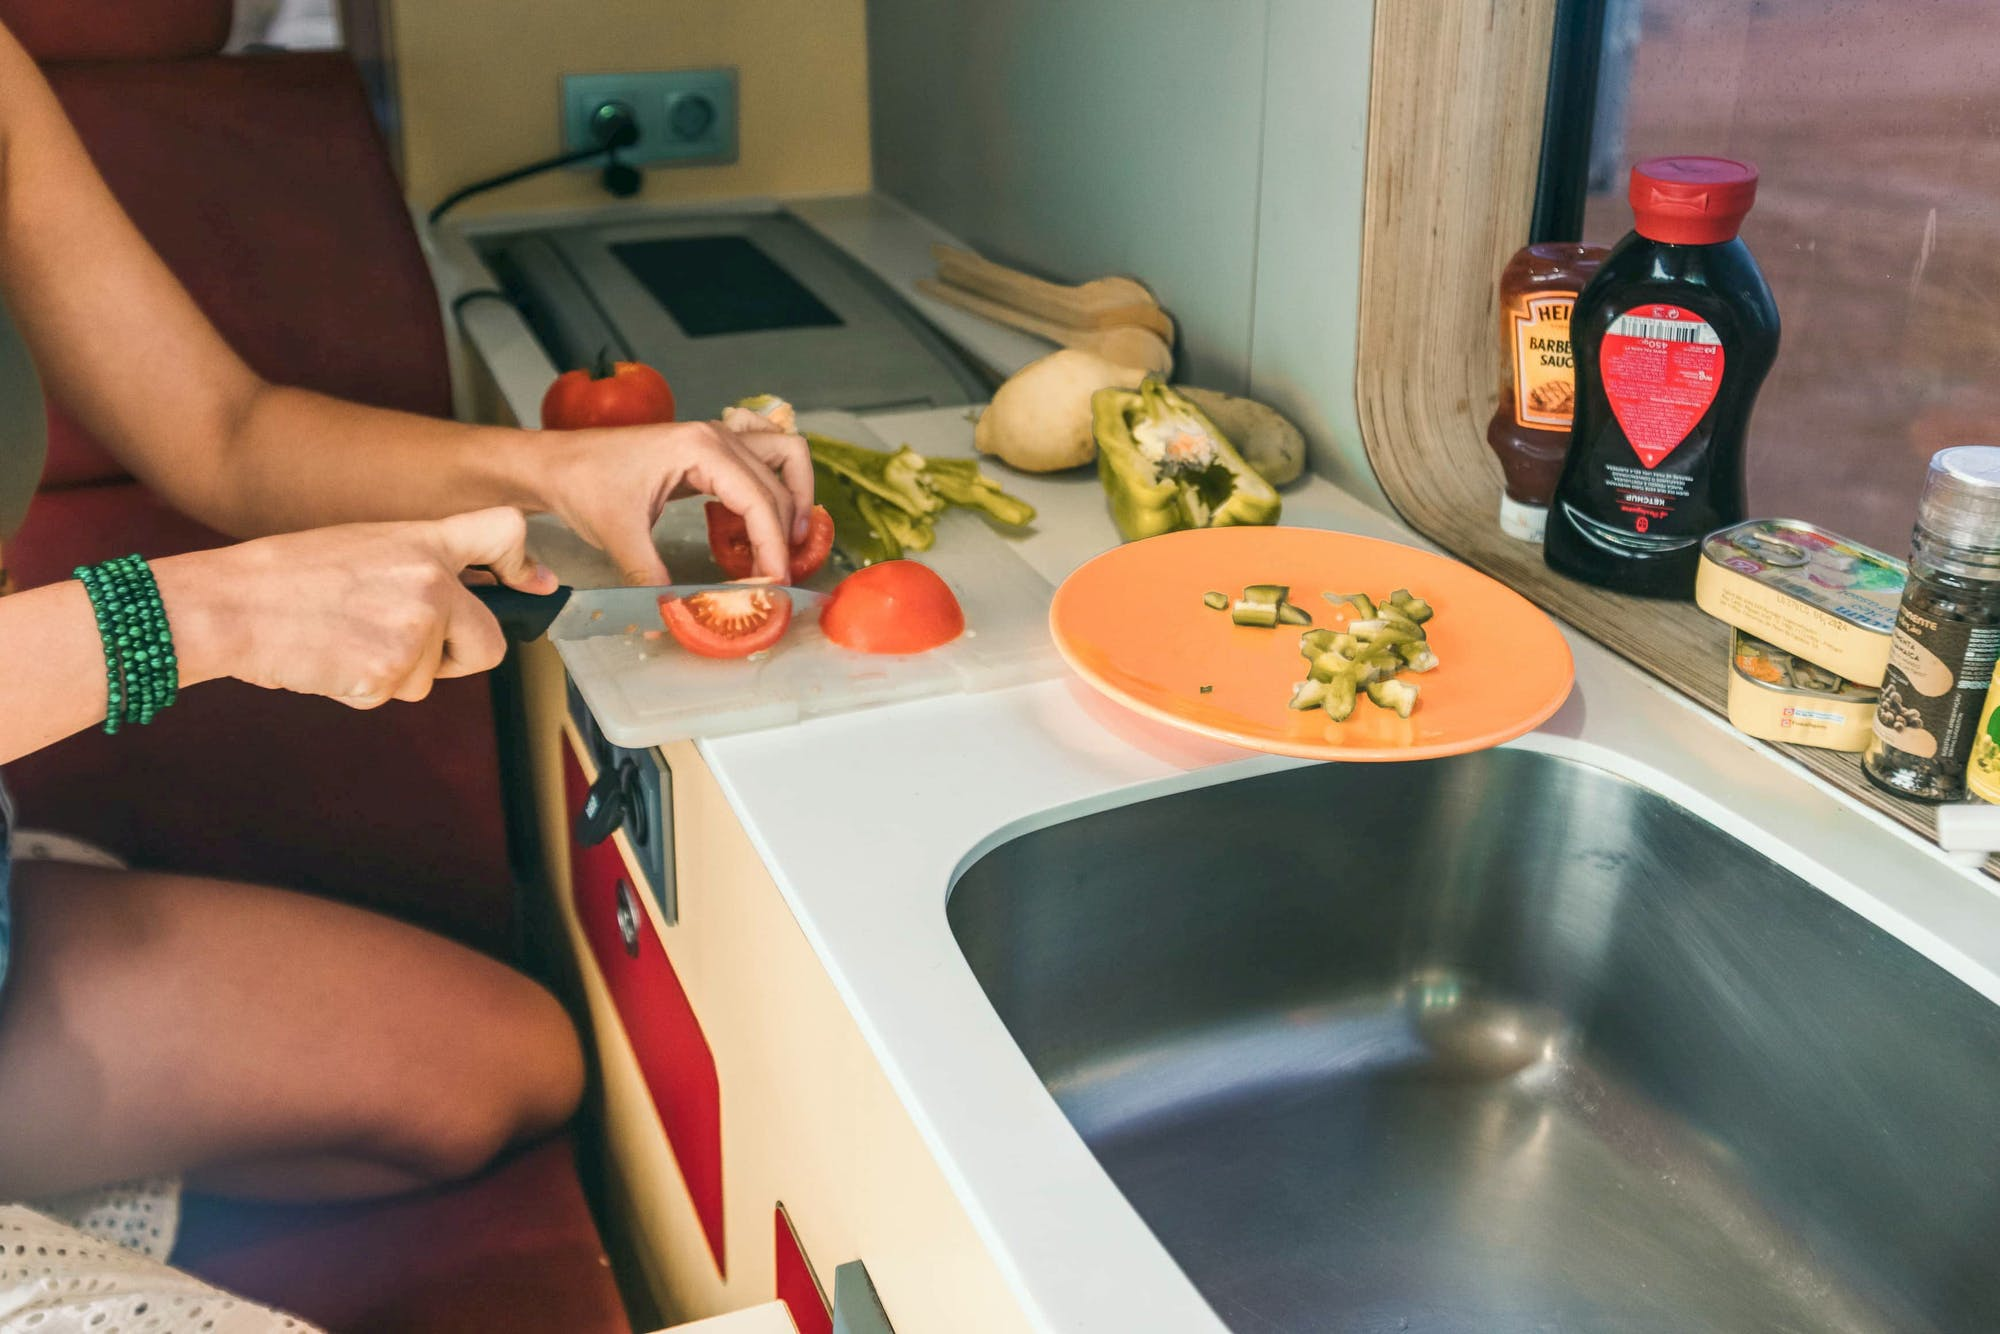 Woman's hand cooking inside the Sporty campervan